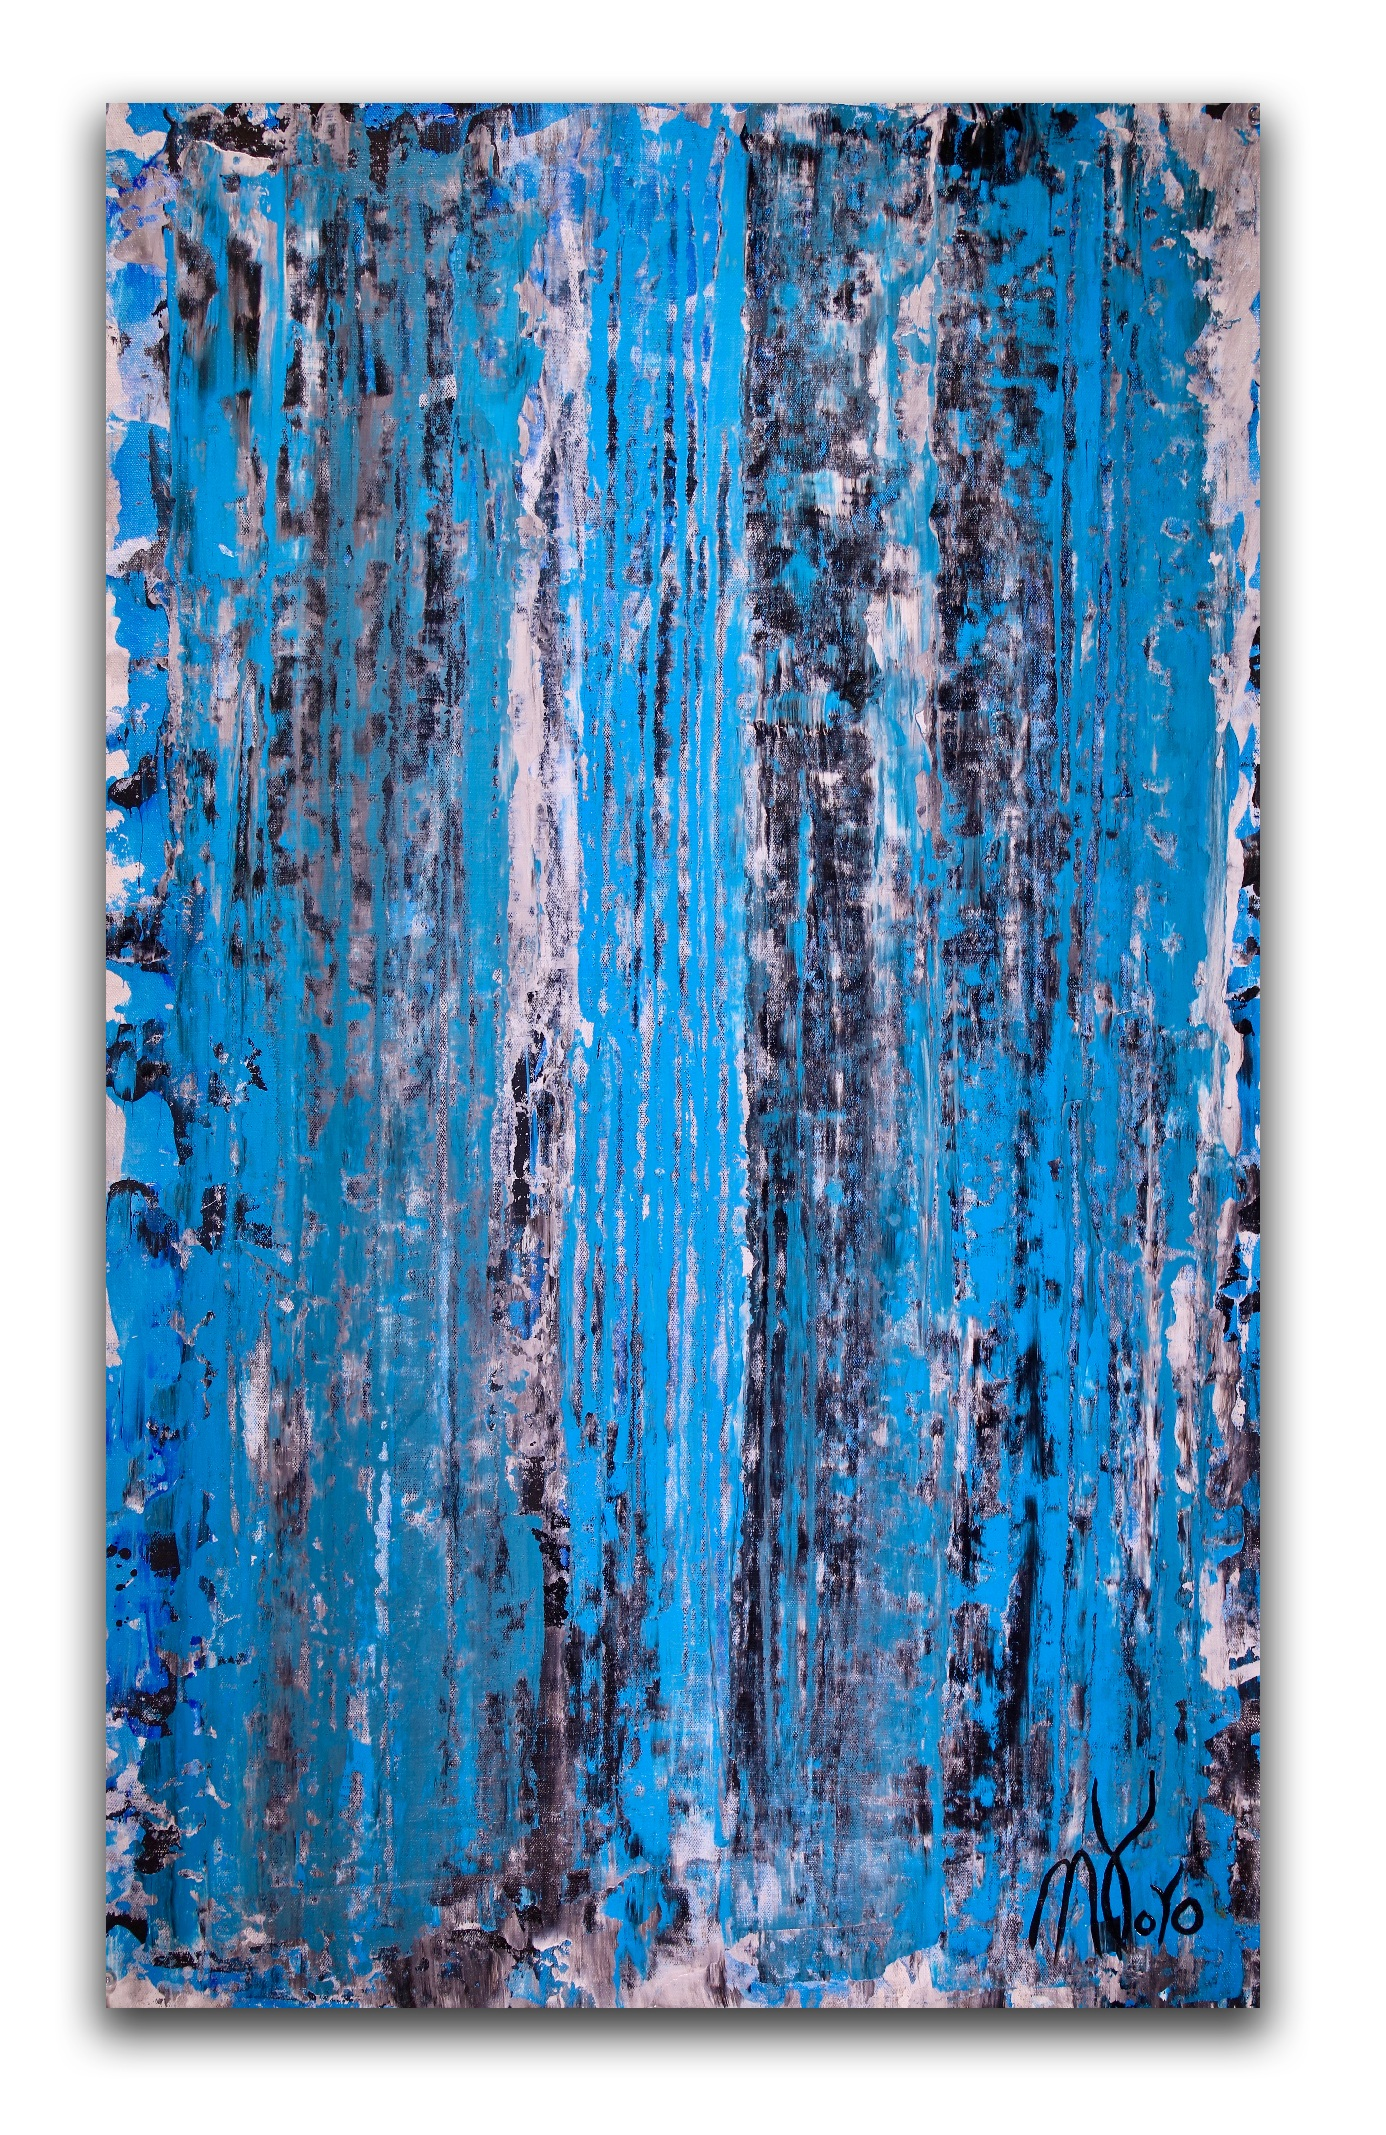 SOLD - Shower the world with blue (2018) Expressionistic Acrylic painting by Nestor Toro